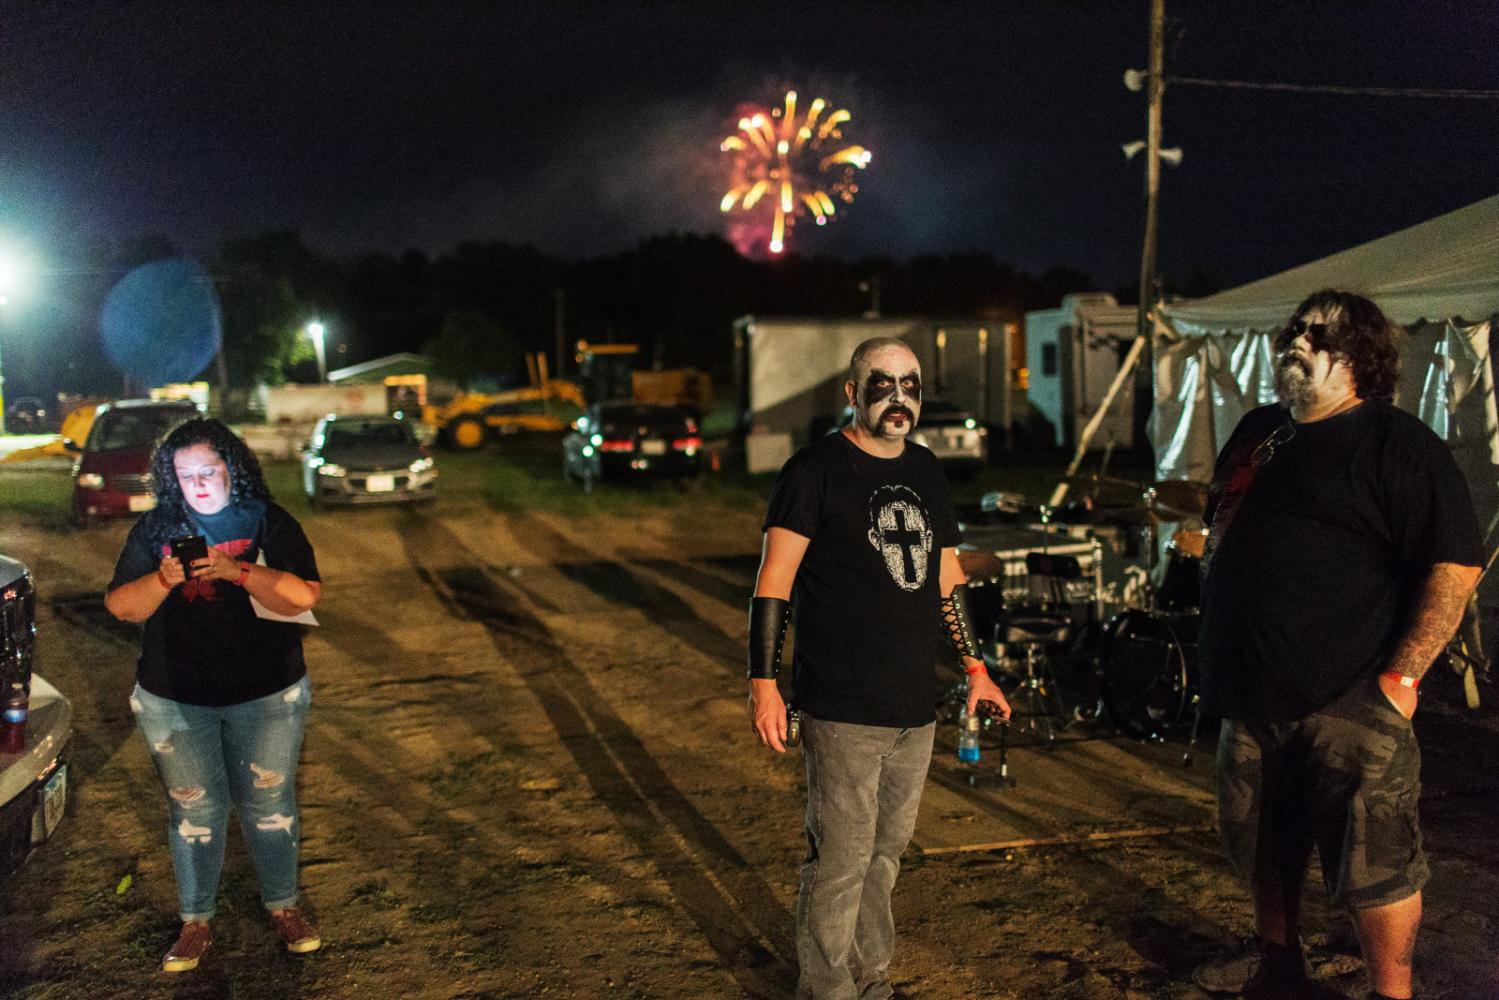 A Christian metal band gets ready to perform while fireworks go off in the background at Audiofeed Festival in Urbana, Illinois on Sunday, July 2, 2017. © 2017 KC McGinnis